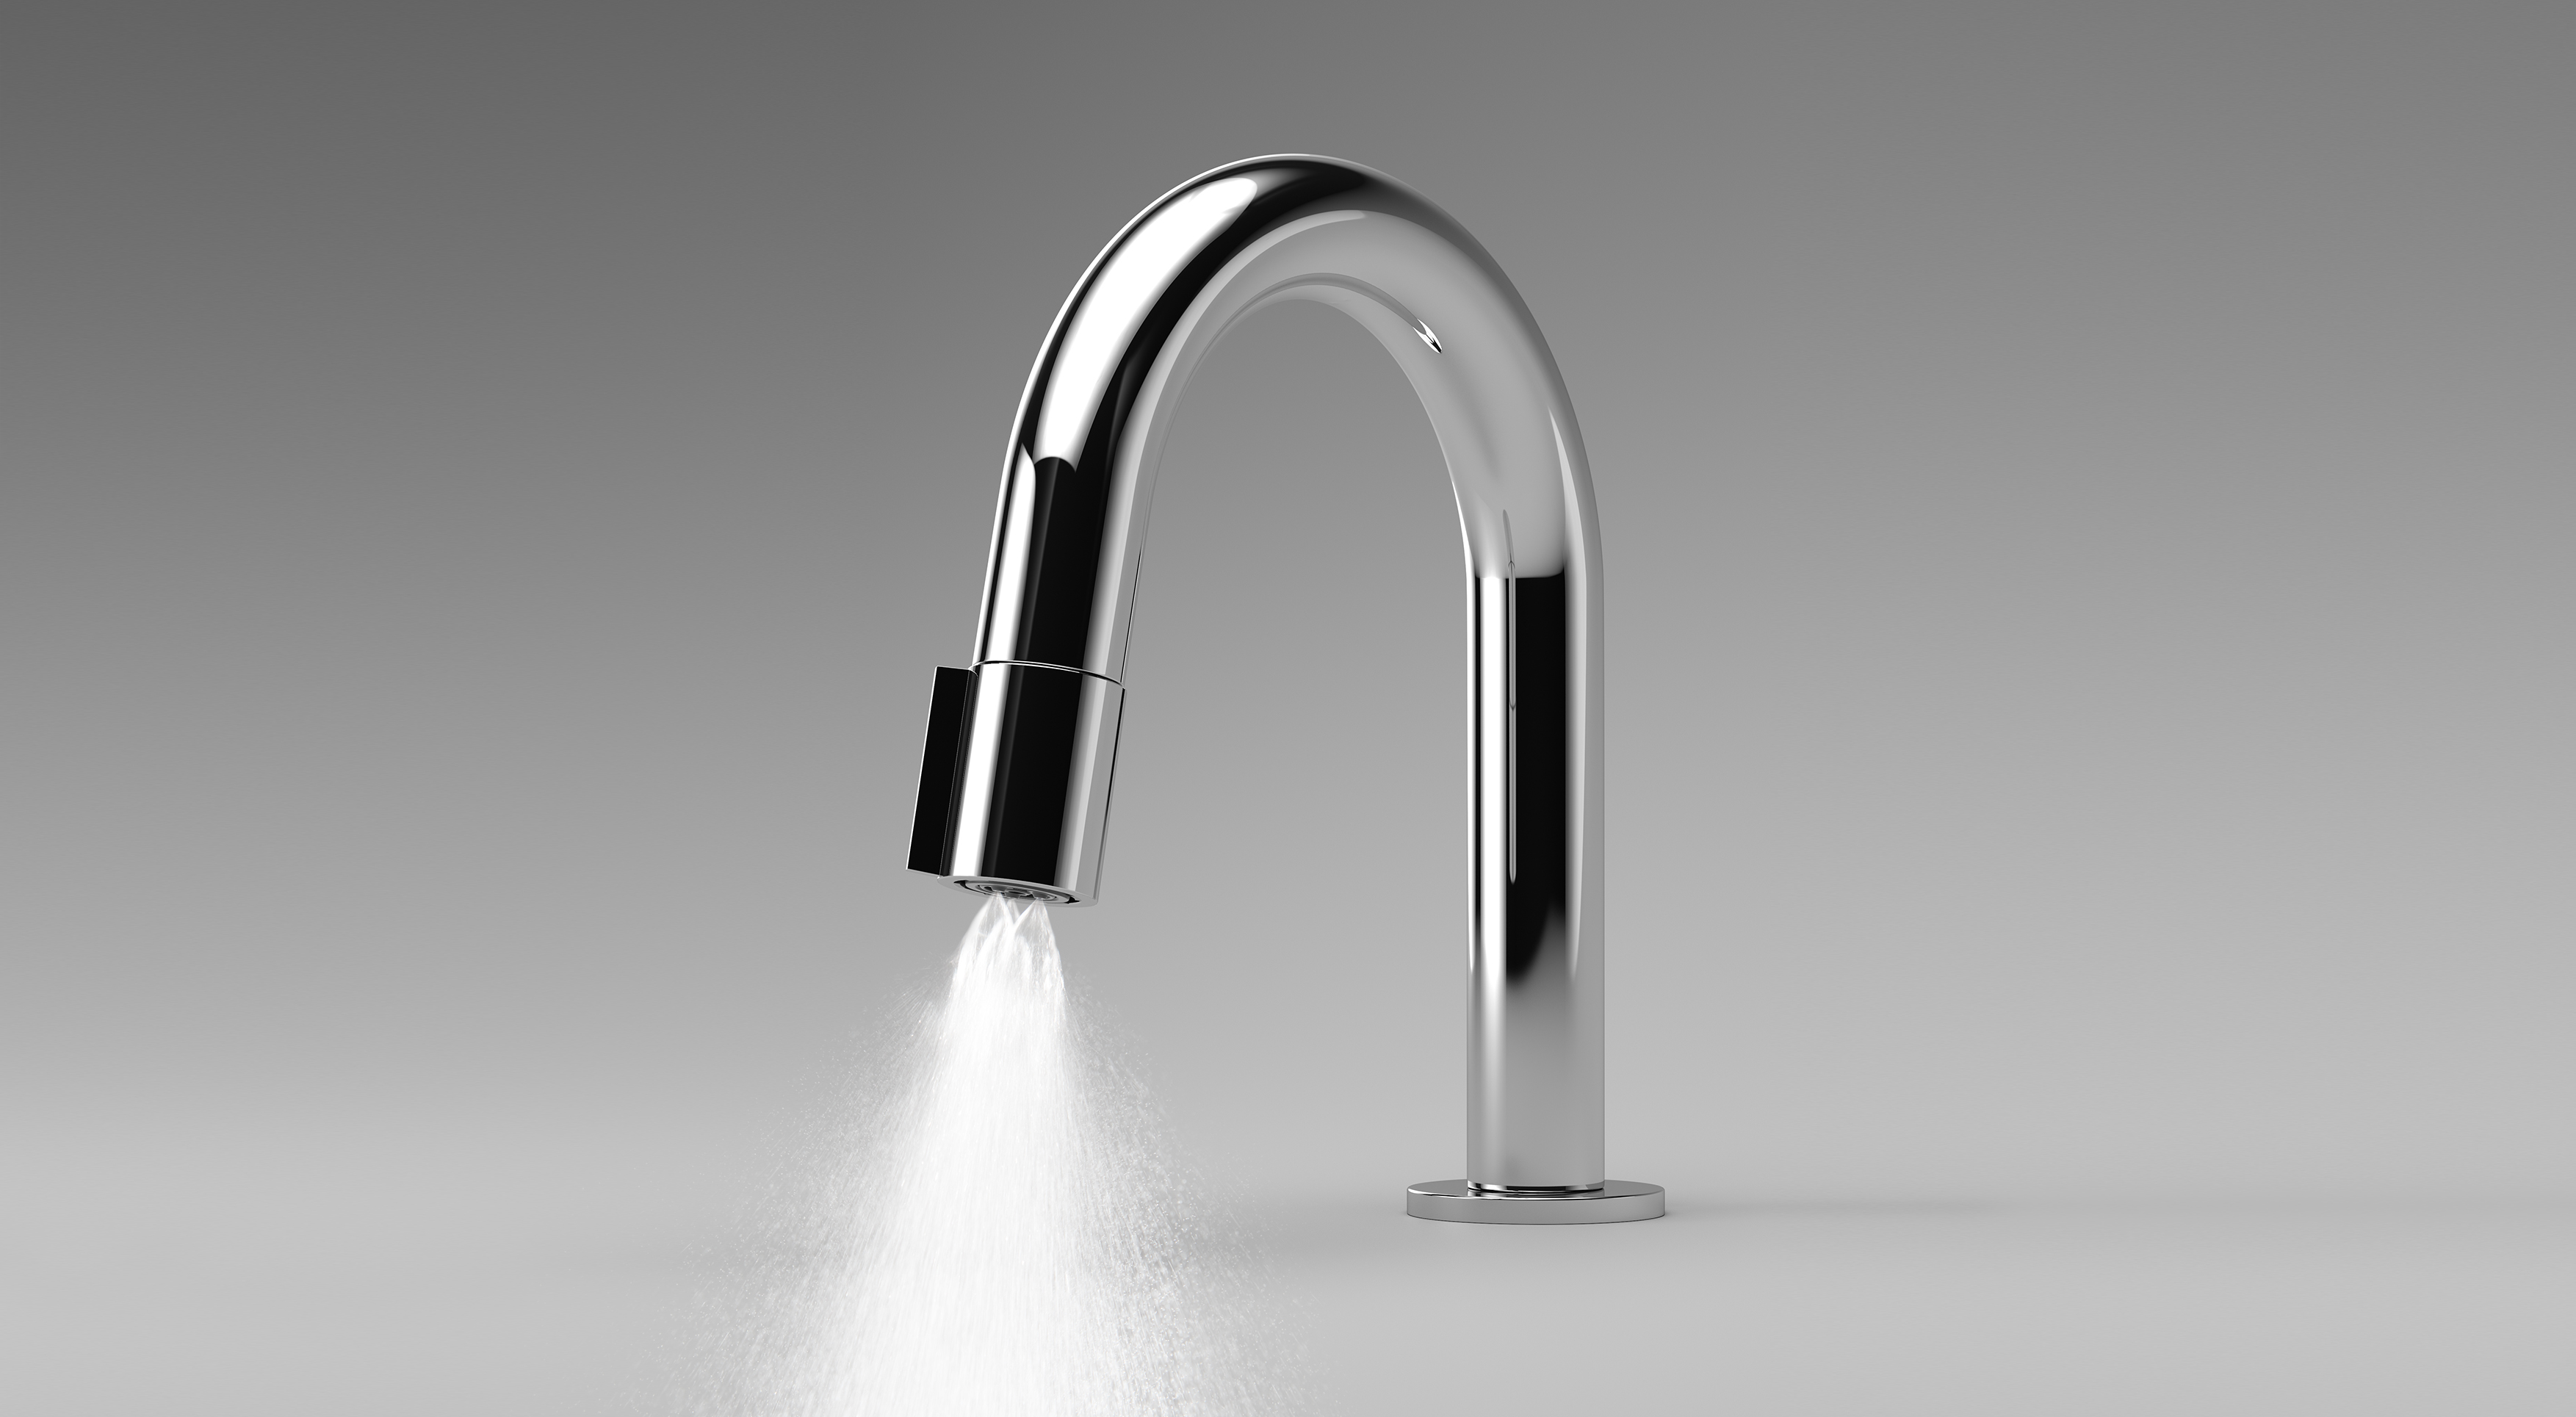 isave use water monitor seconds for innovation faucets inhabitat design green displaying ad saving